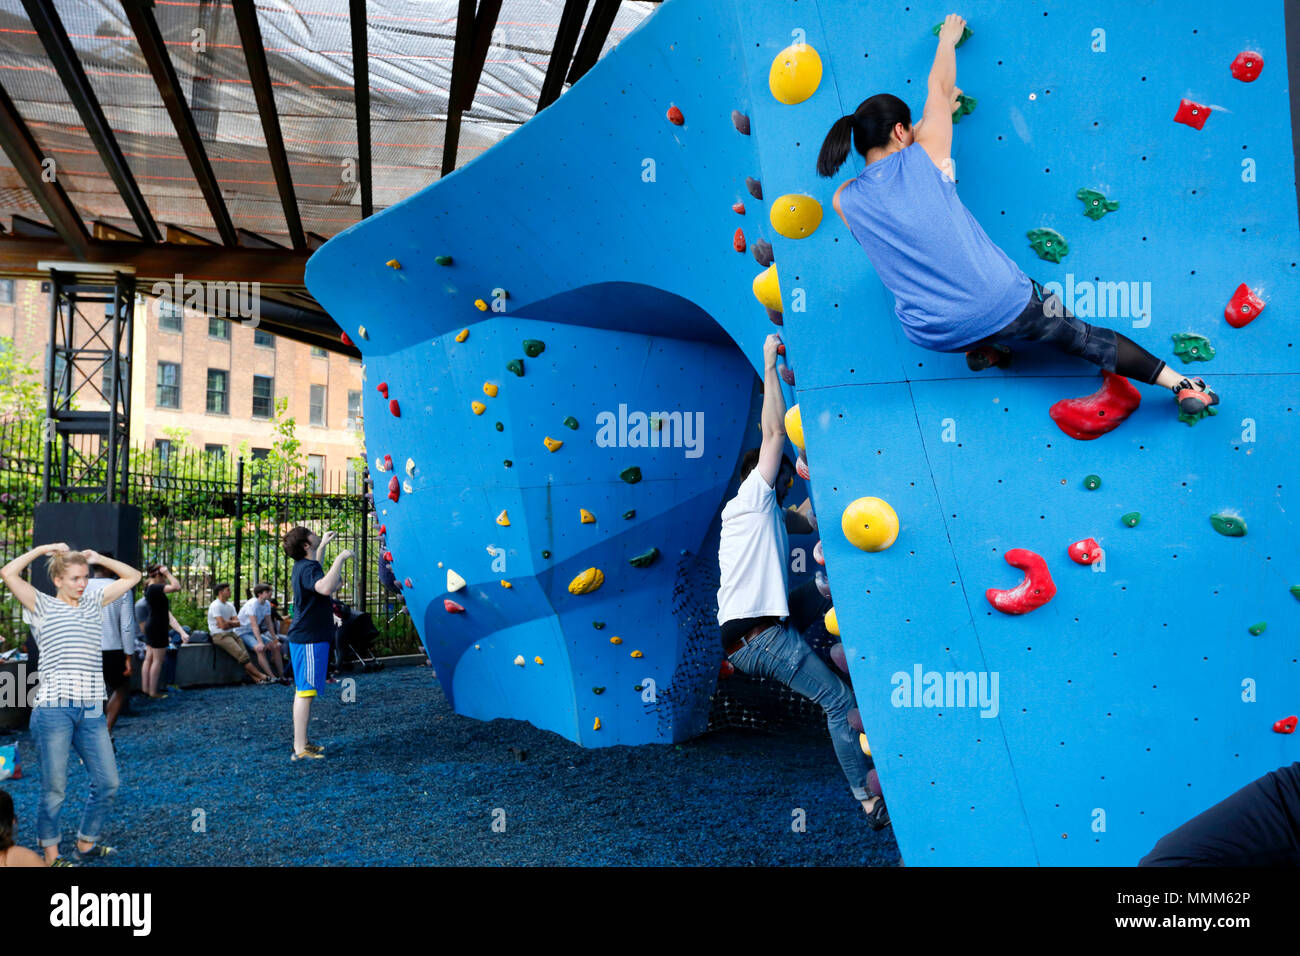 Rock climbers at The Cliffs at DUMBO - Stock Image